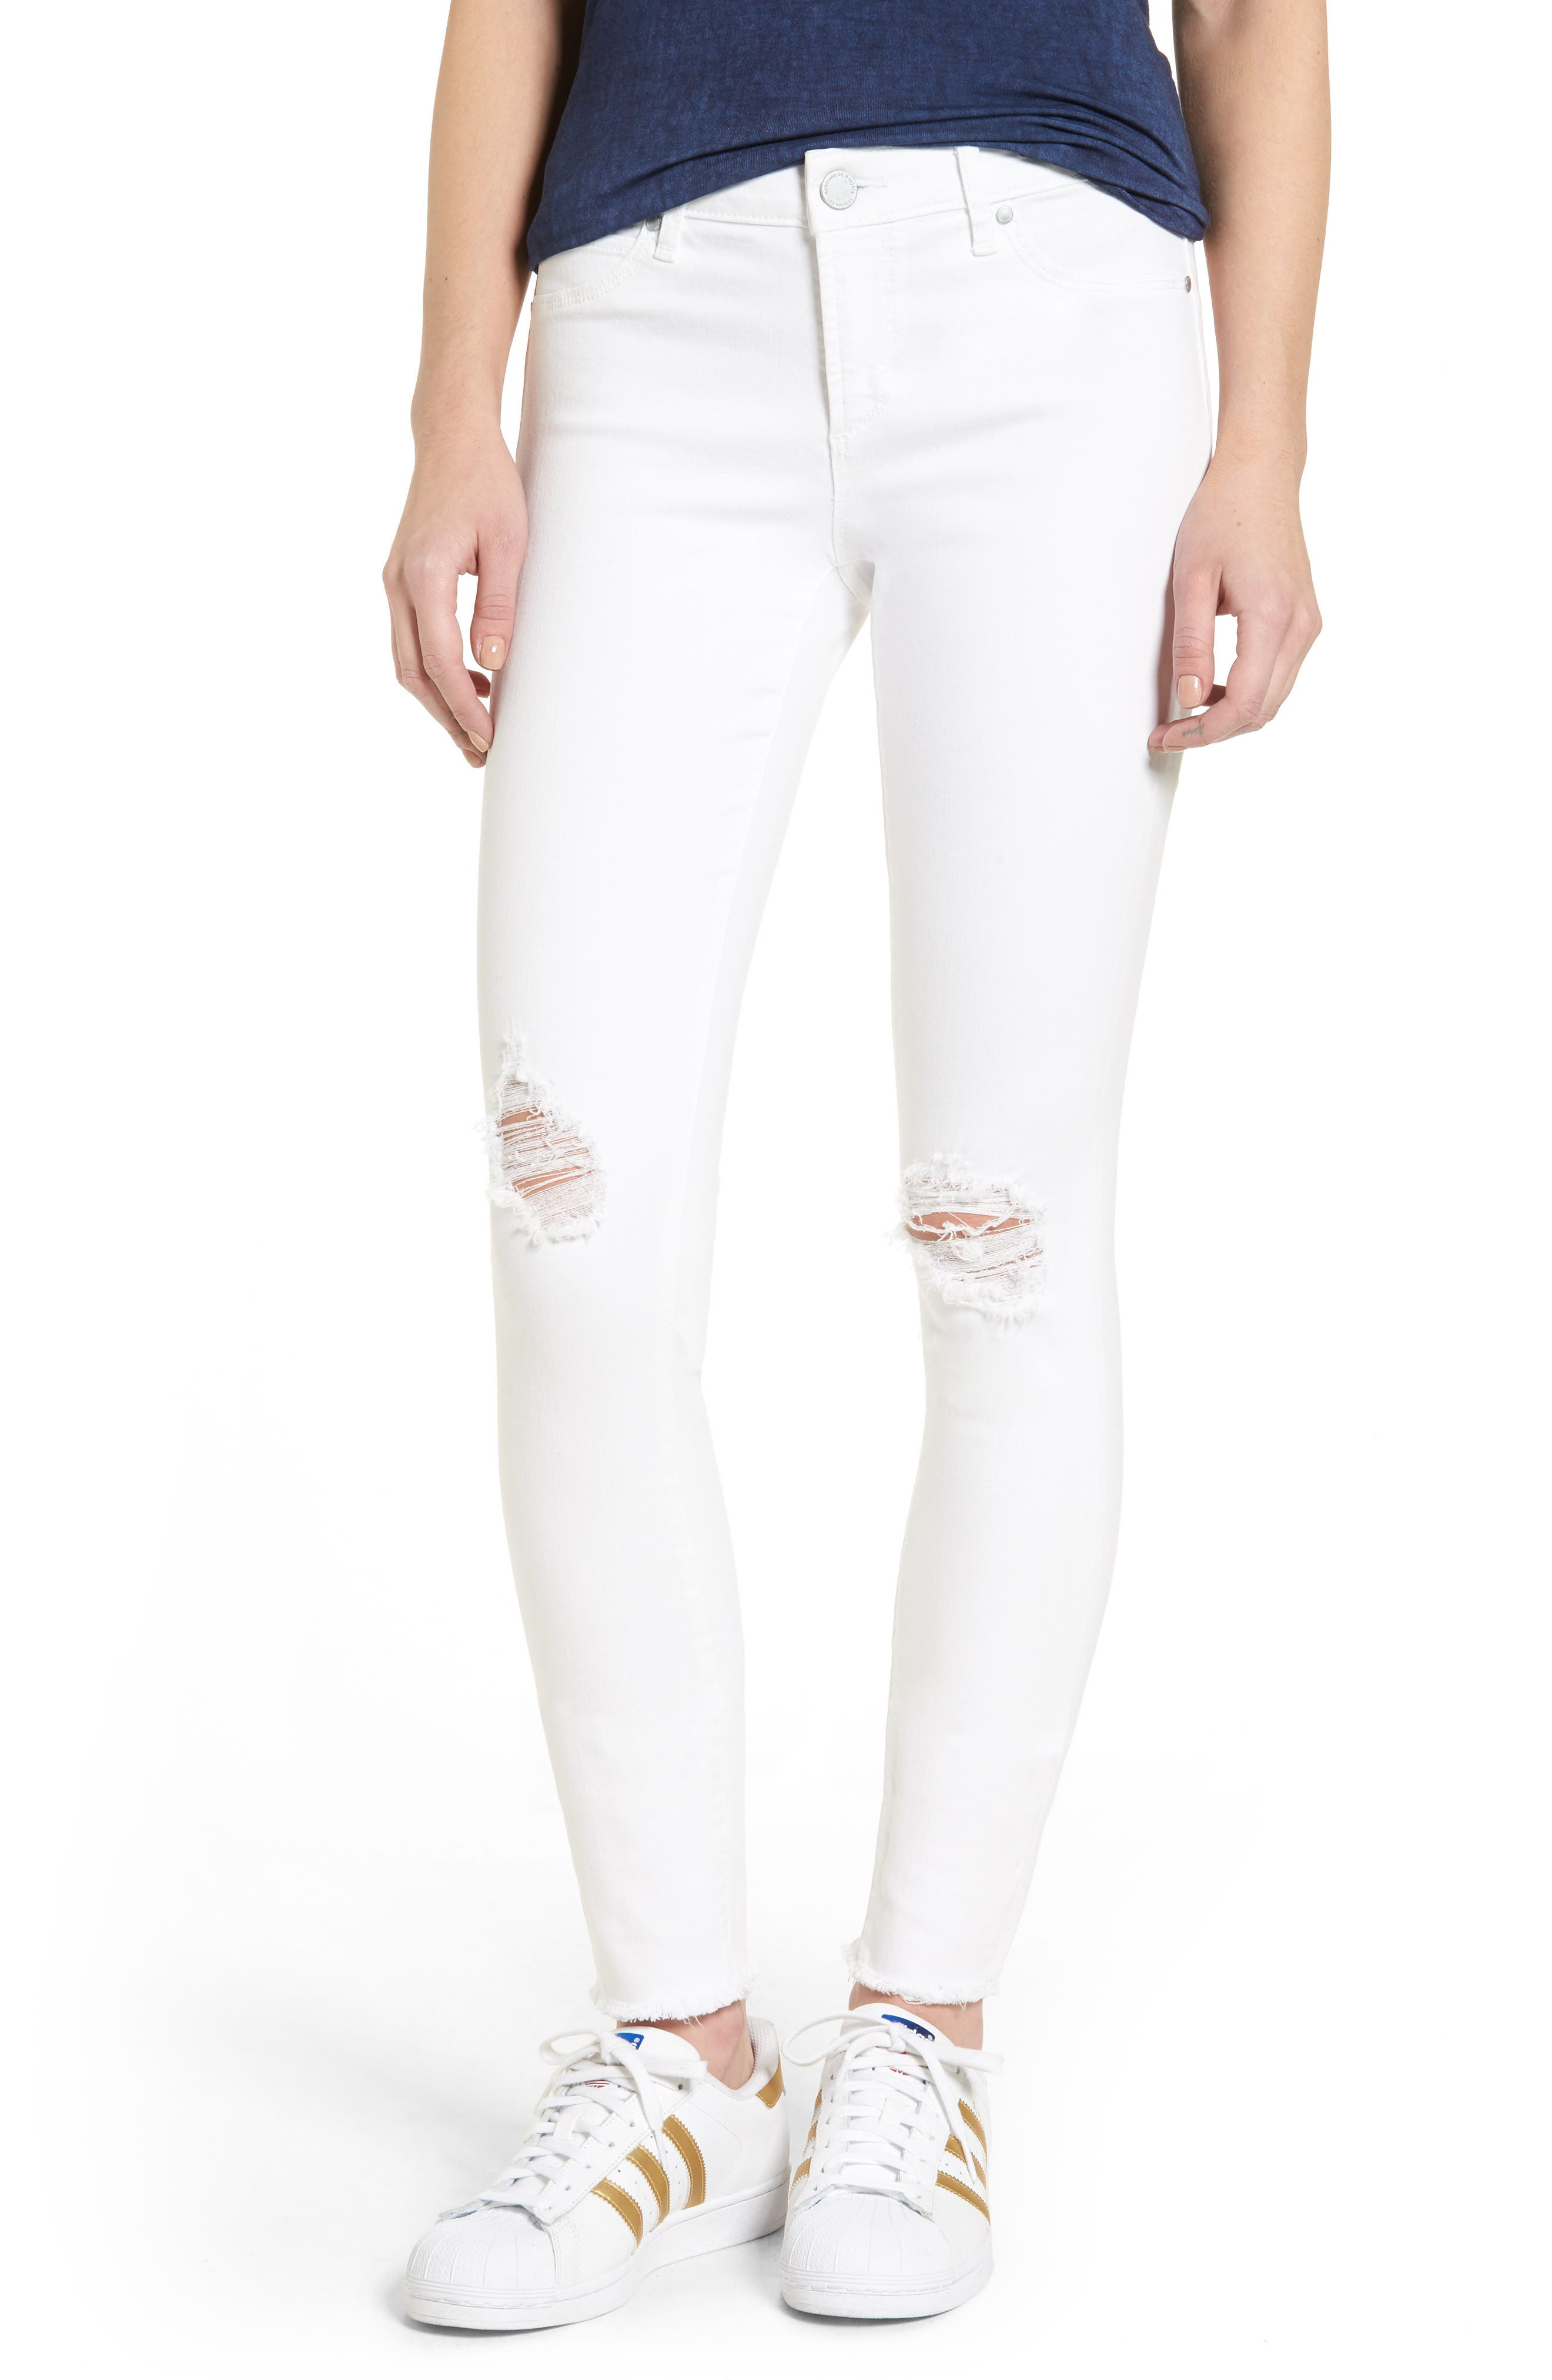 ARTICLES OF SOCIETY, Sarah Distressed Skinny Jeans, Main thumbnail 1, color, 100